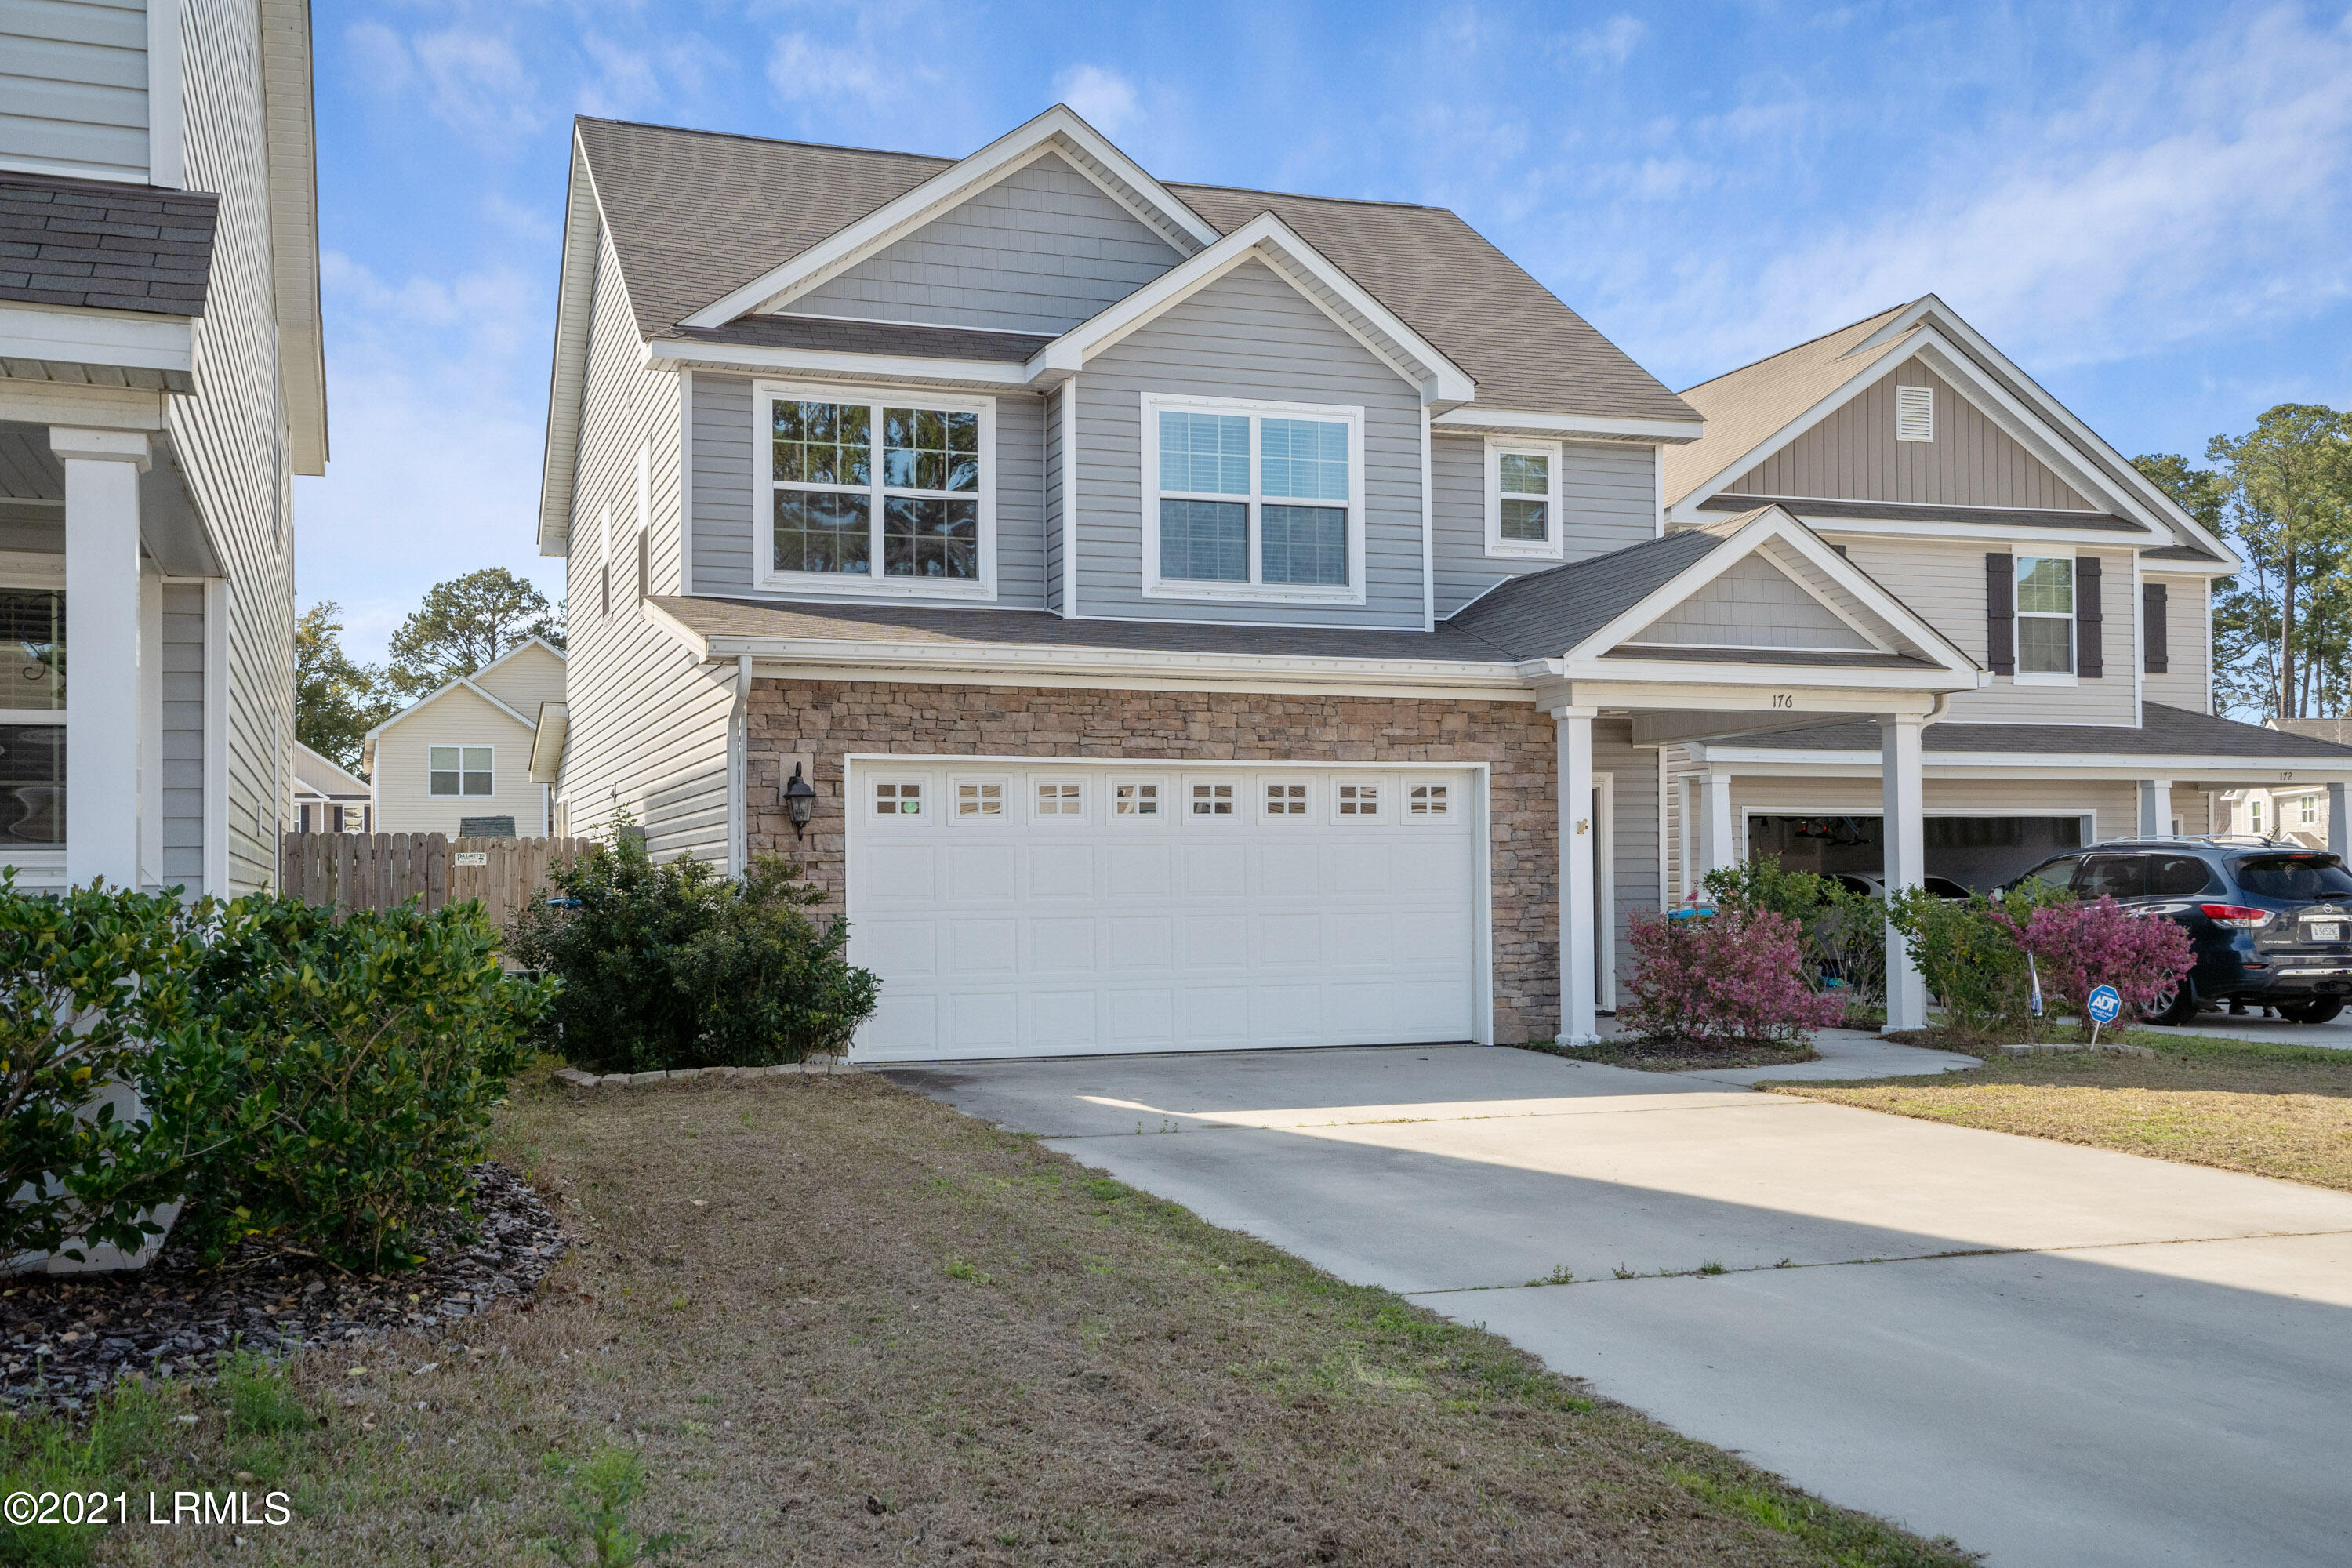 Photo of 176 Mission Way, Beaufort, SC 29906